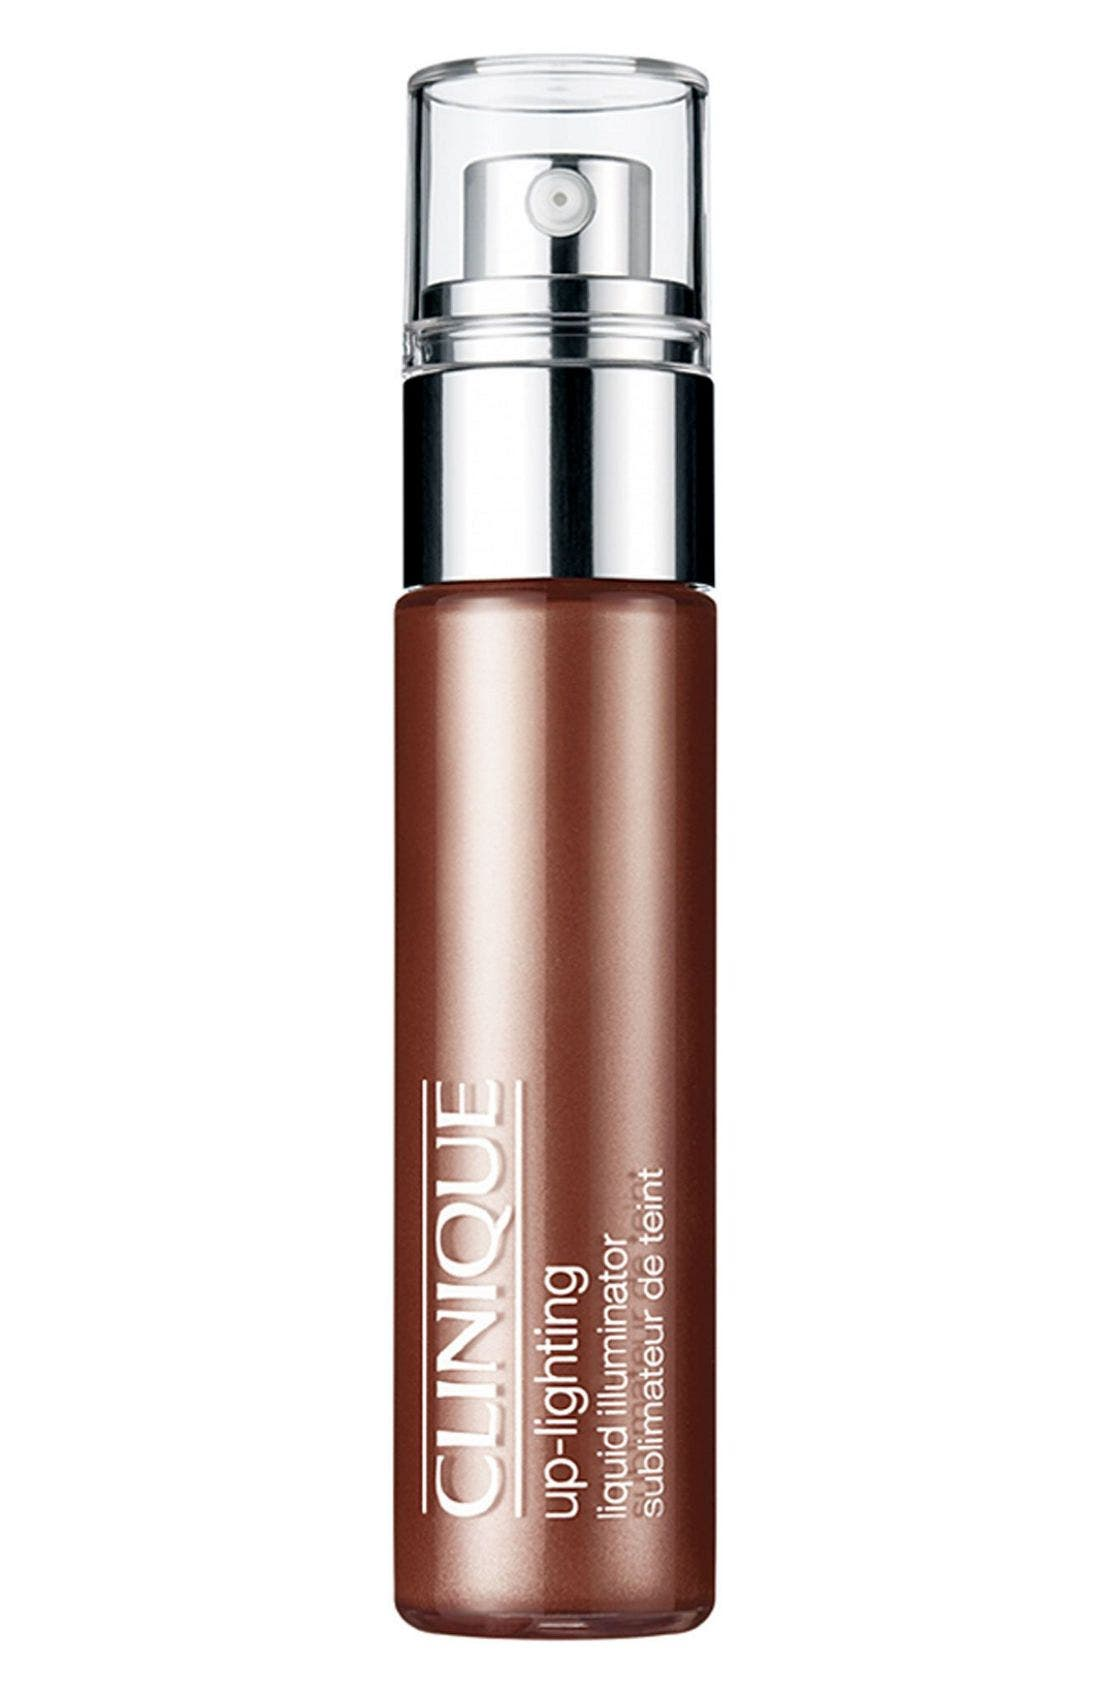 Clinique 'Up-Lighting' Liquid Illuminator